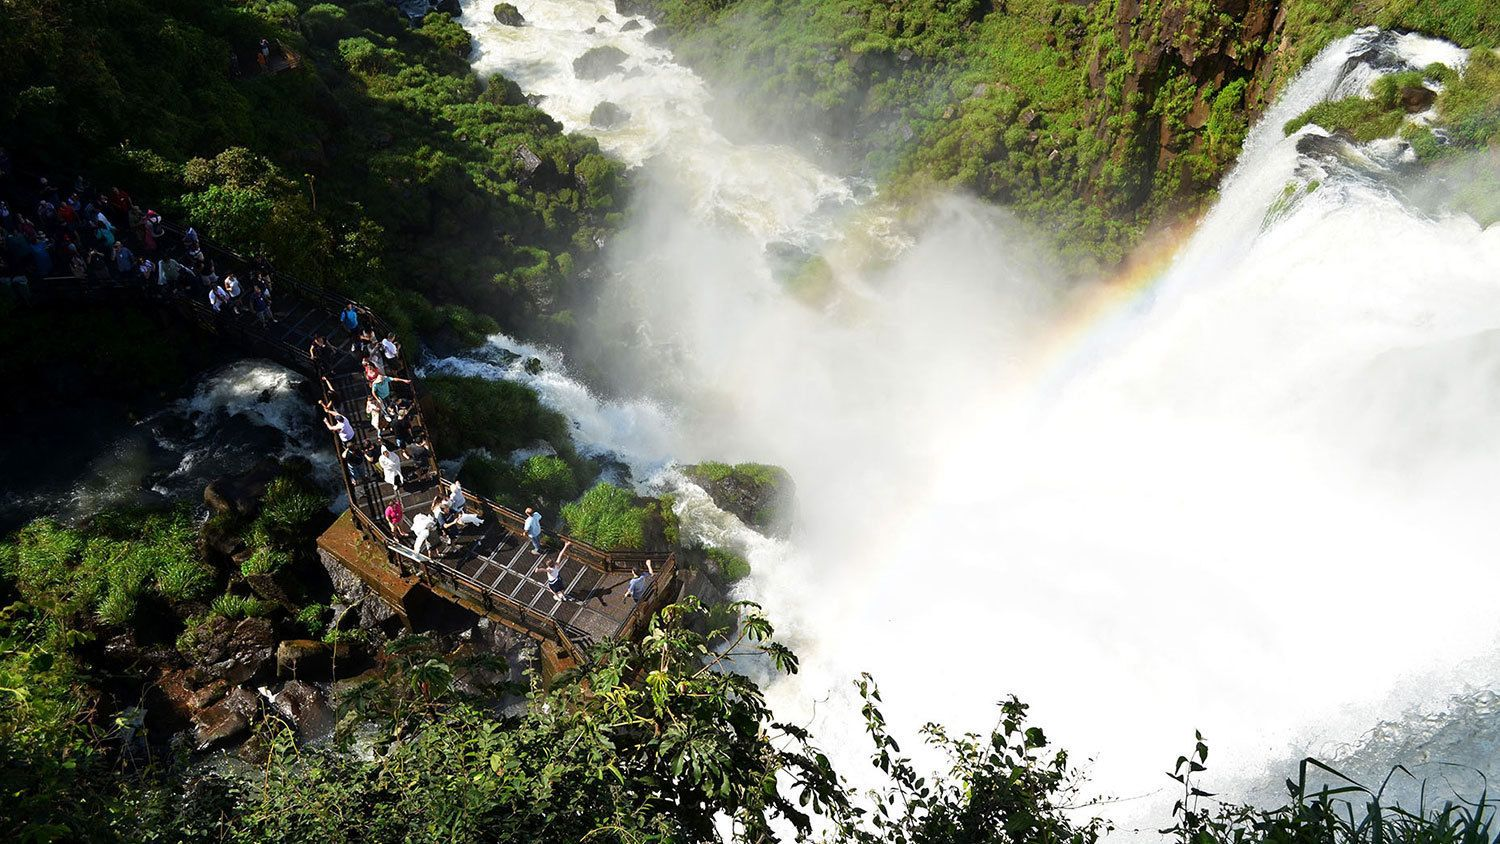 Trail with people at the base of a waterfall in Iguazu.